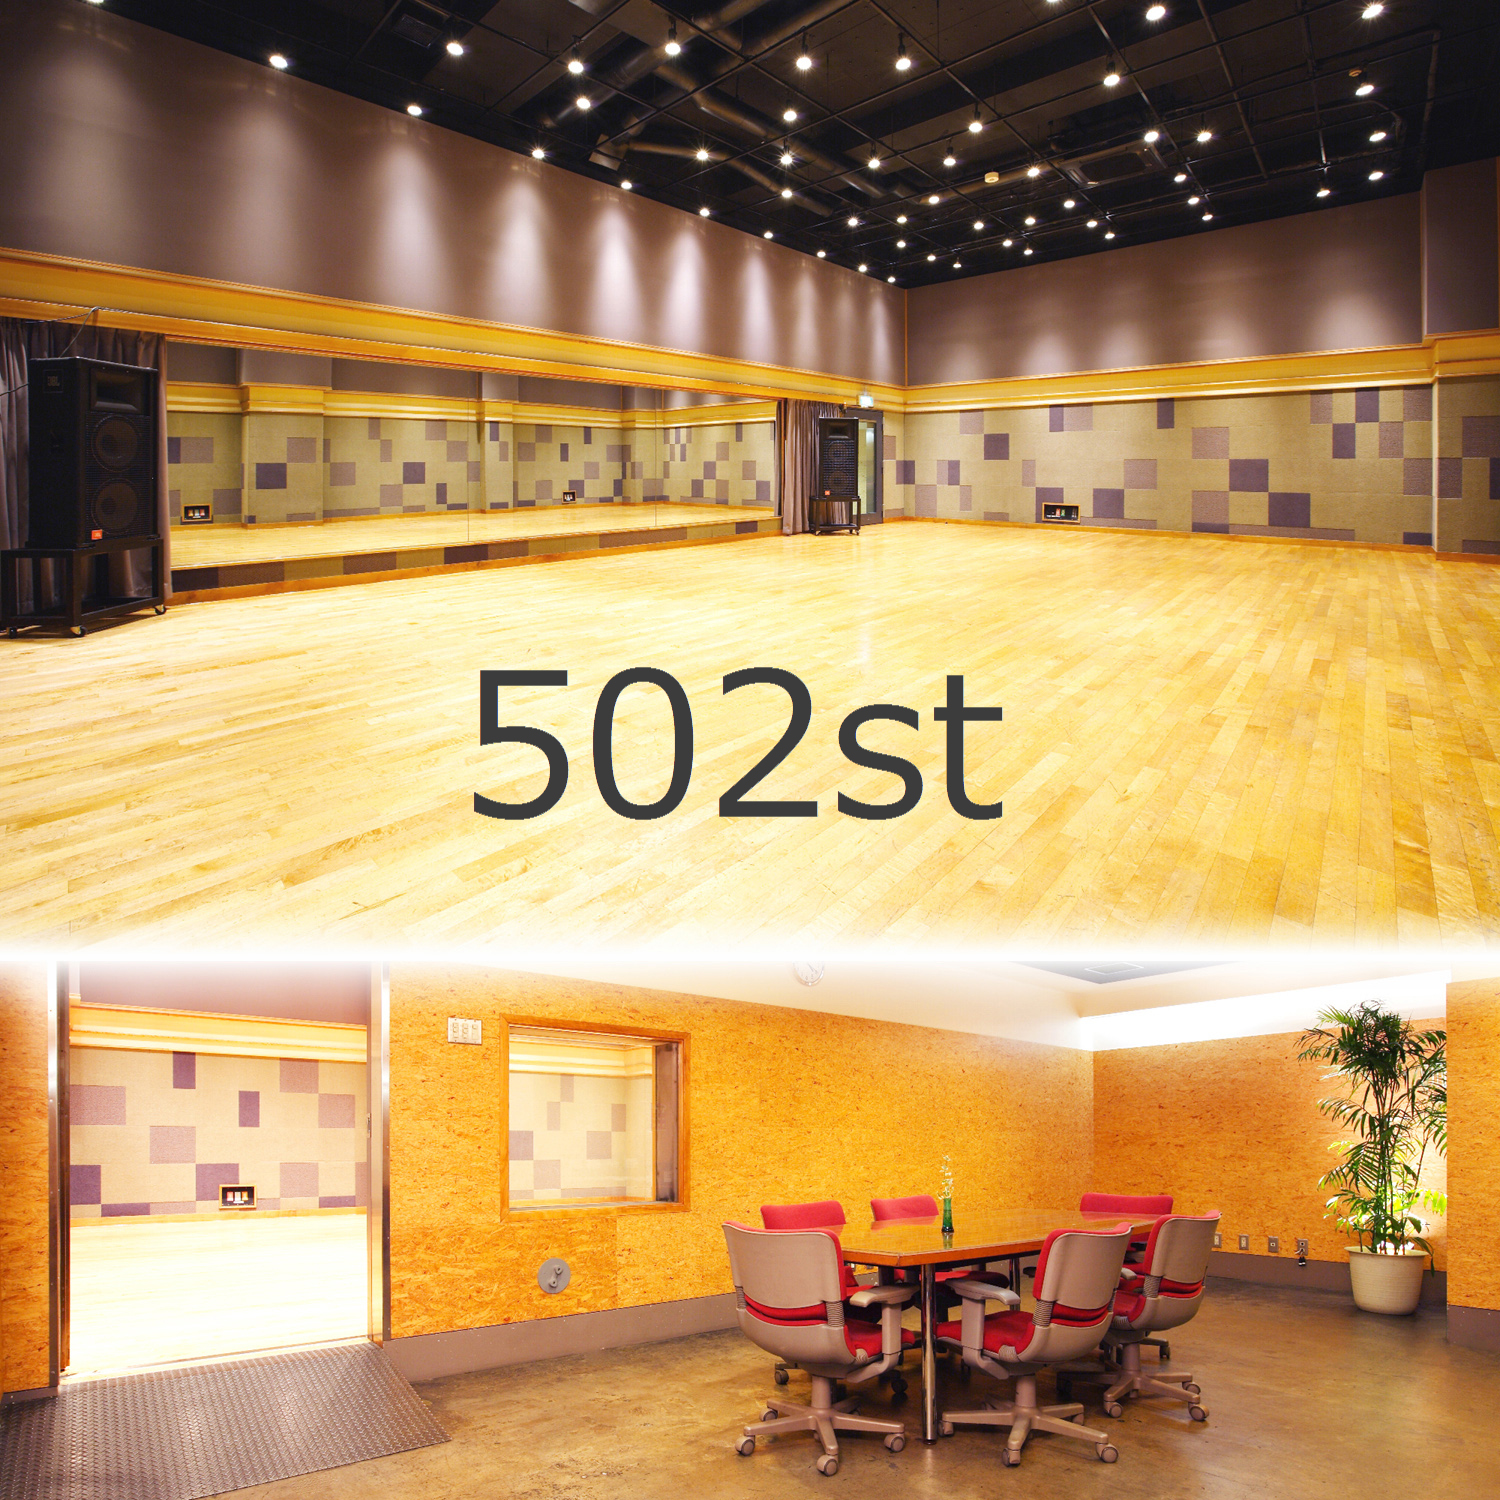 502sts